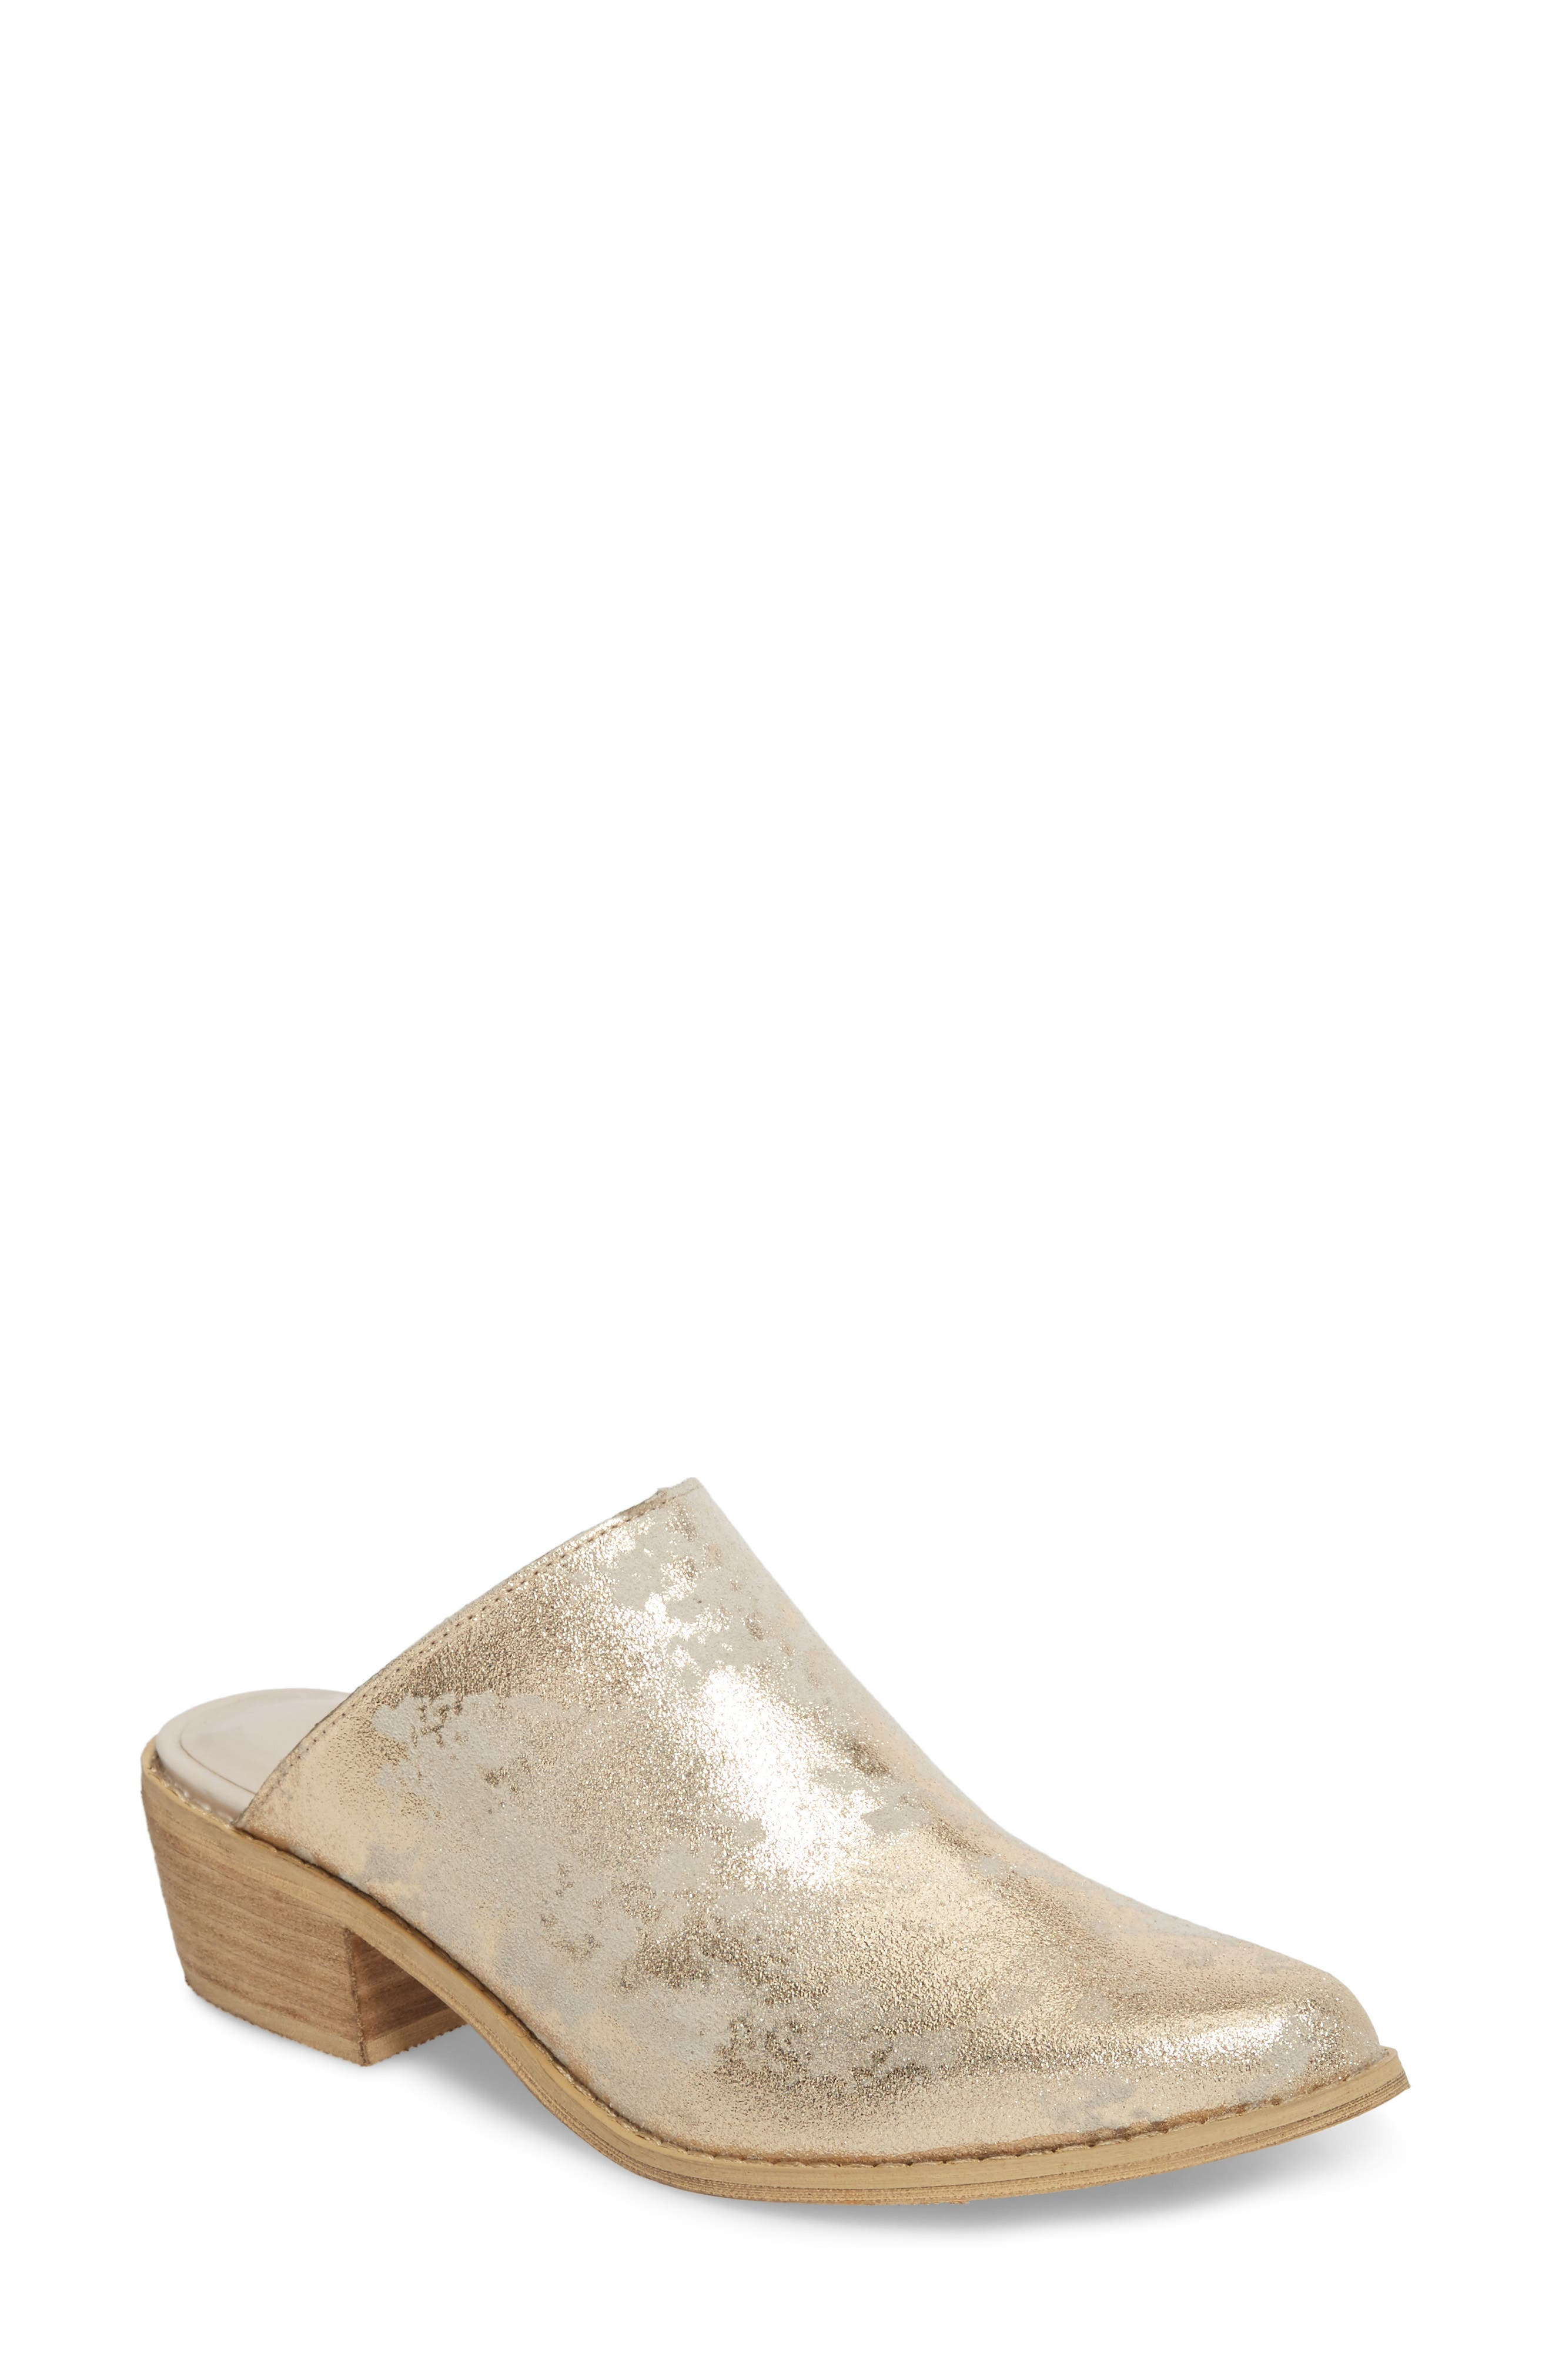 Moonstruck Mule,                         Main,                         color, LIGHT GOLD SUEDE LEATHER